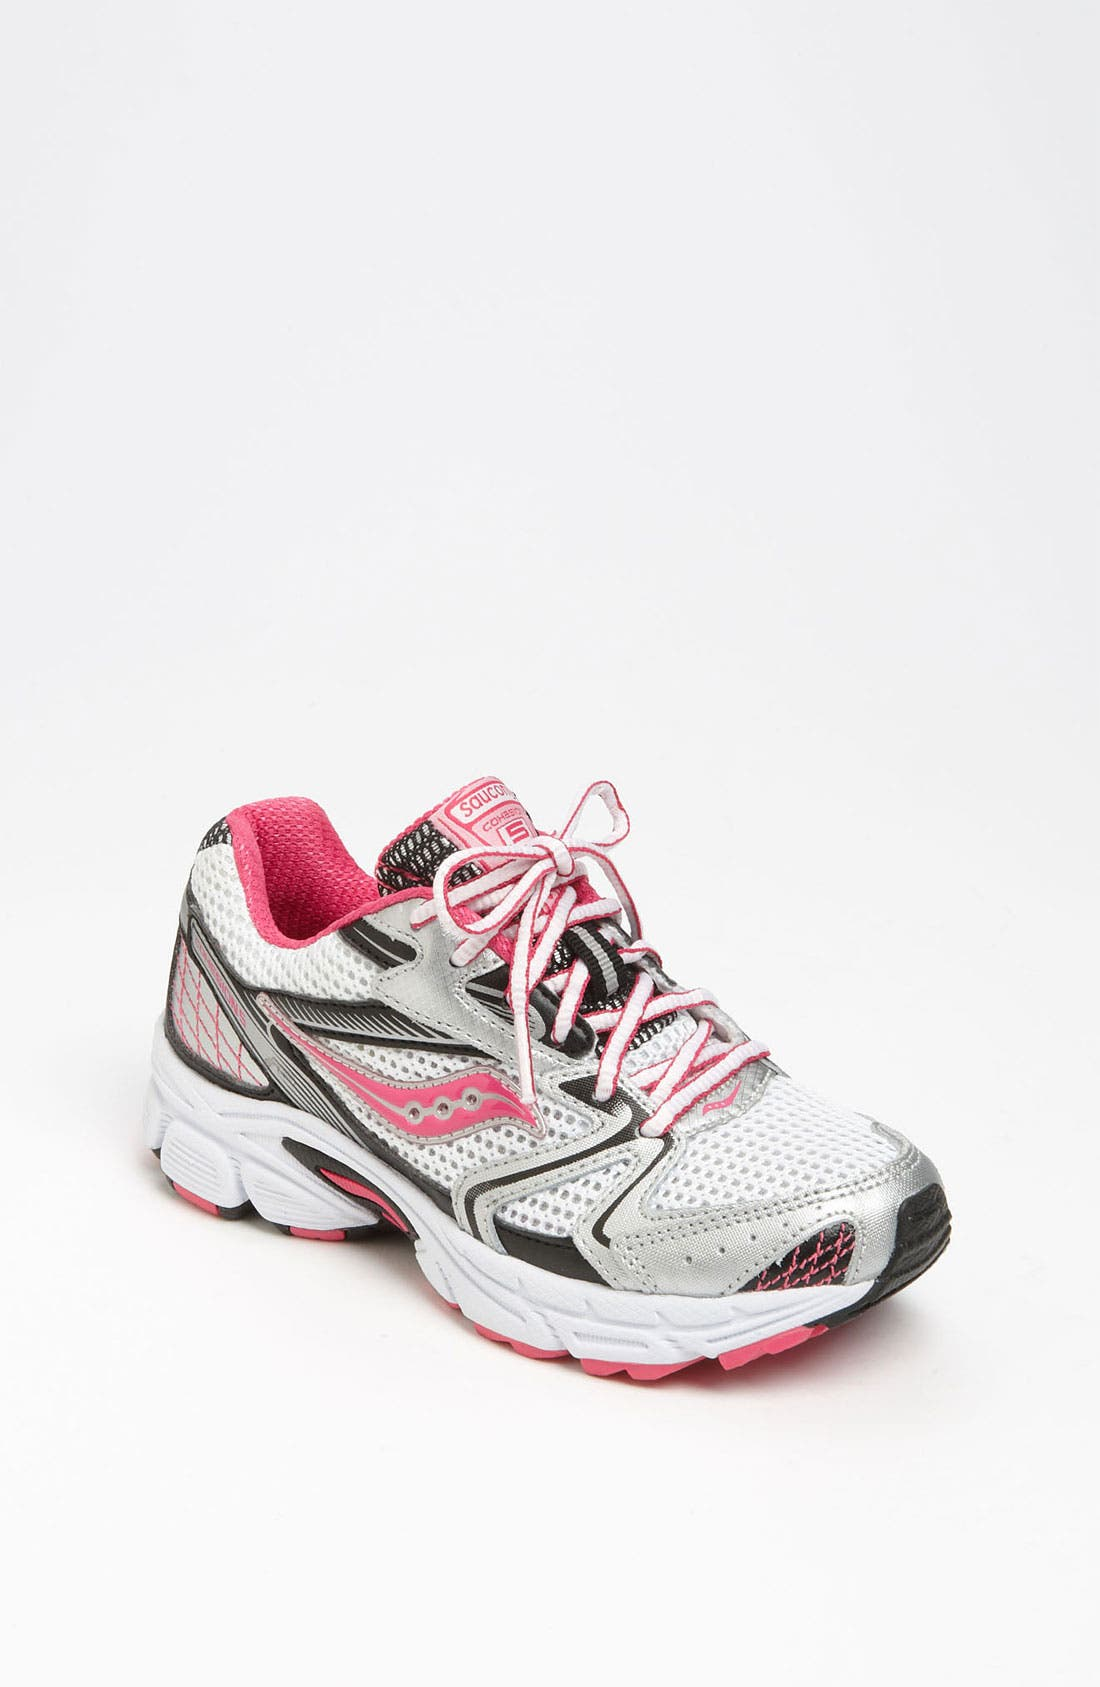 Alternate Image 1 Selected - Saucony 'Cohesion' Running Shoe (Toddler, Little Kid & Big Kid)